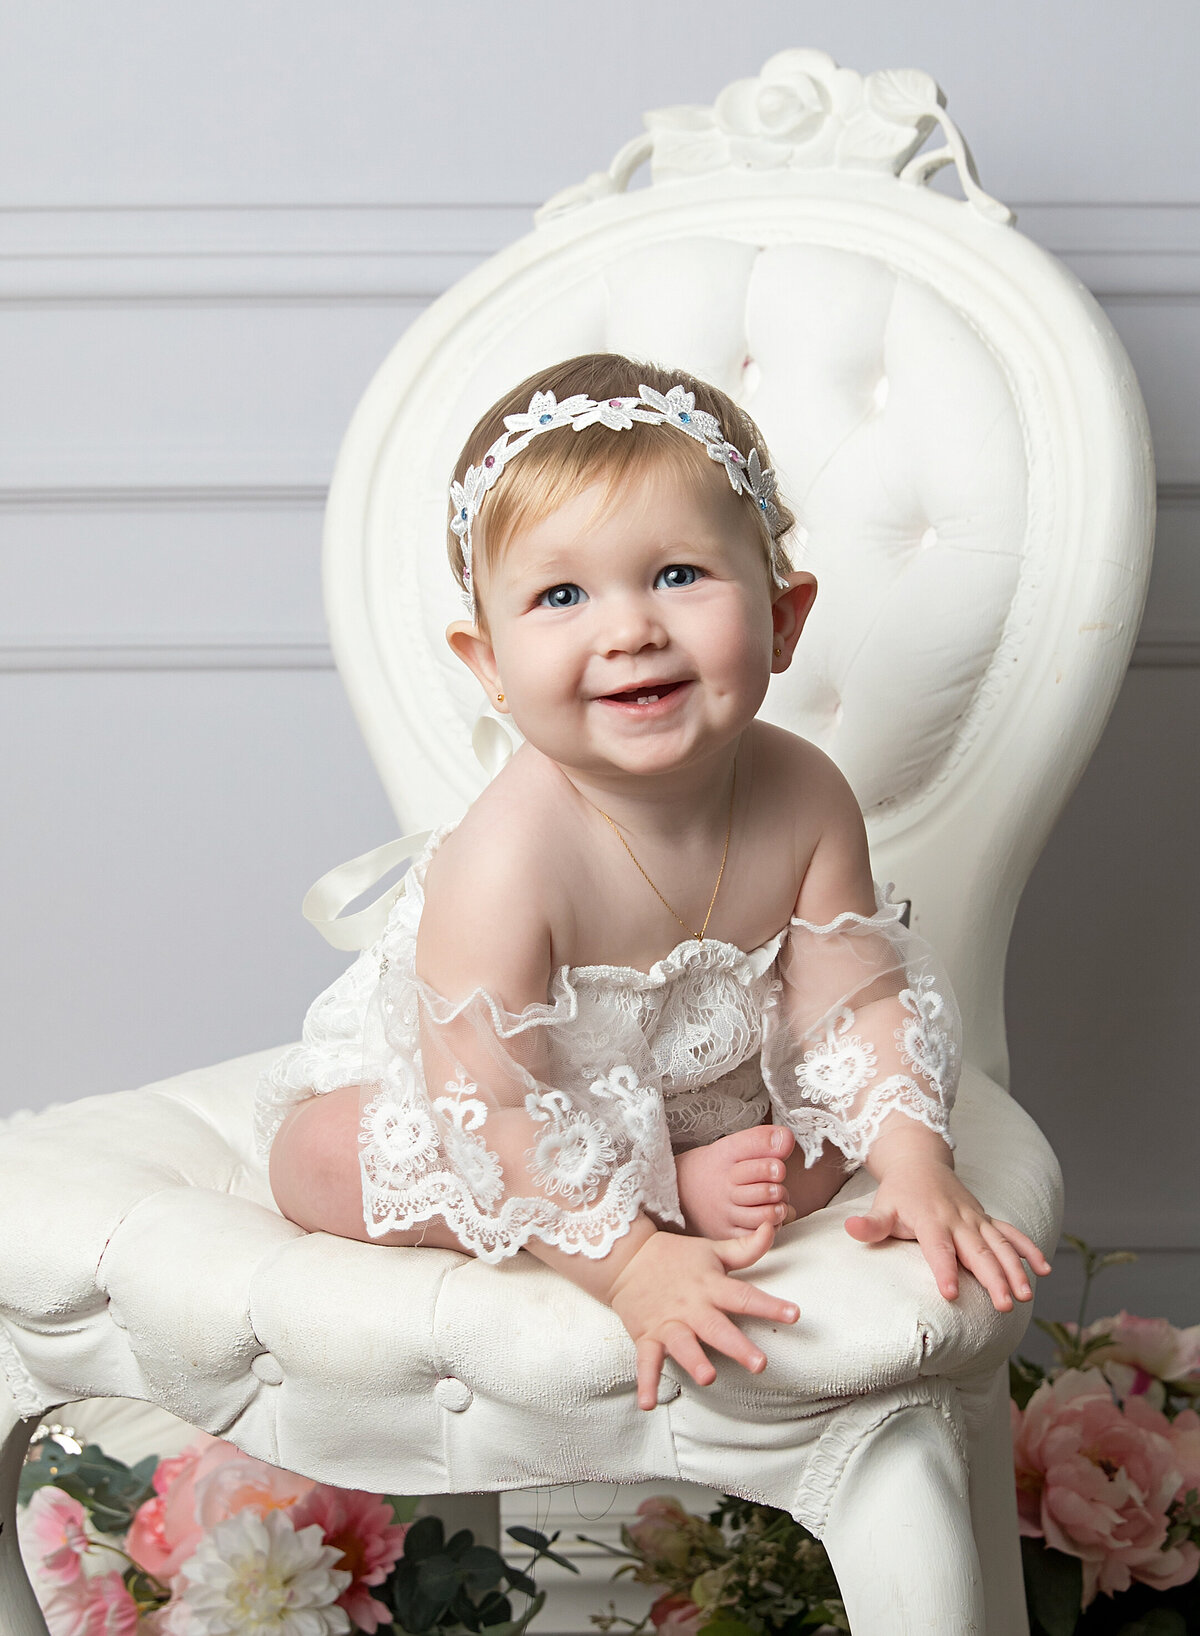 nj_baby_photographer_plan_couture